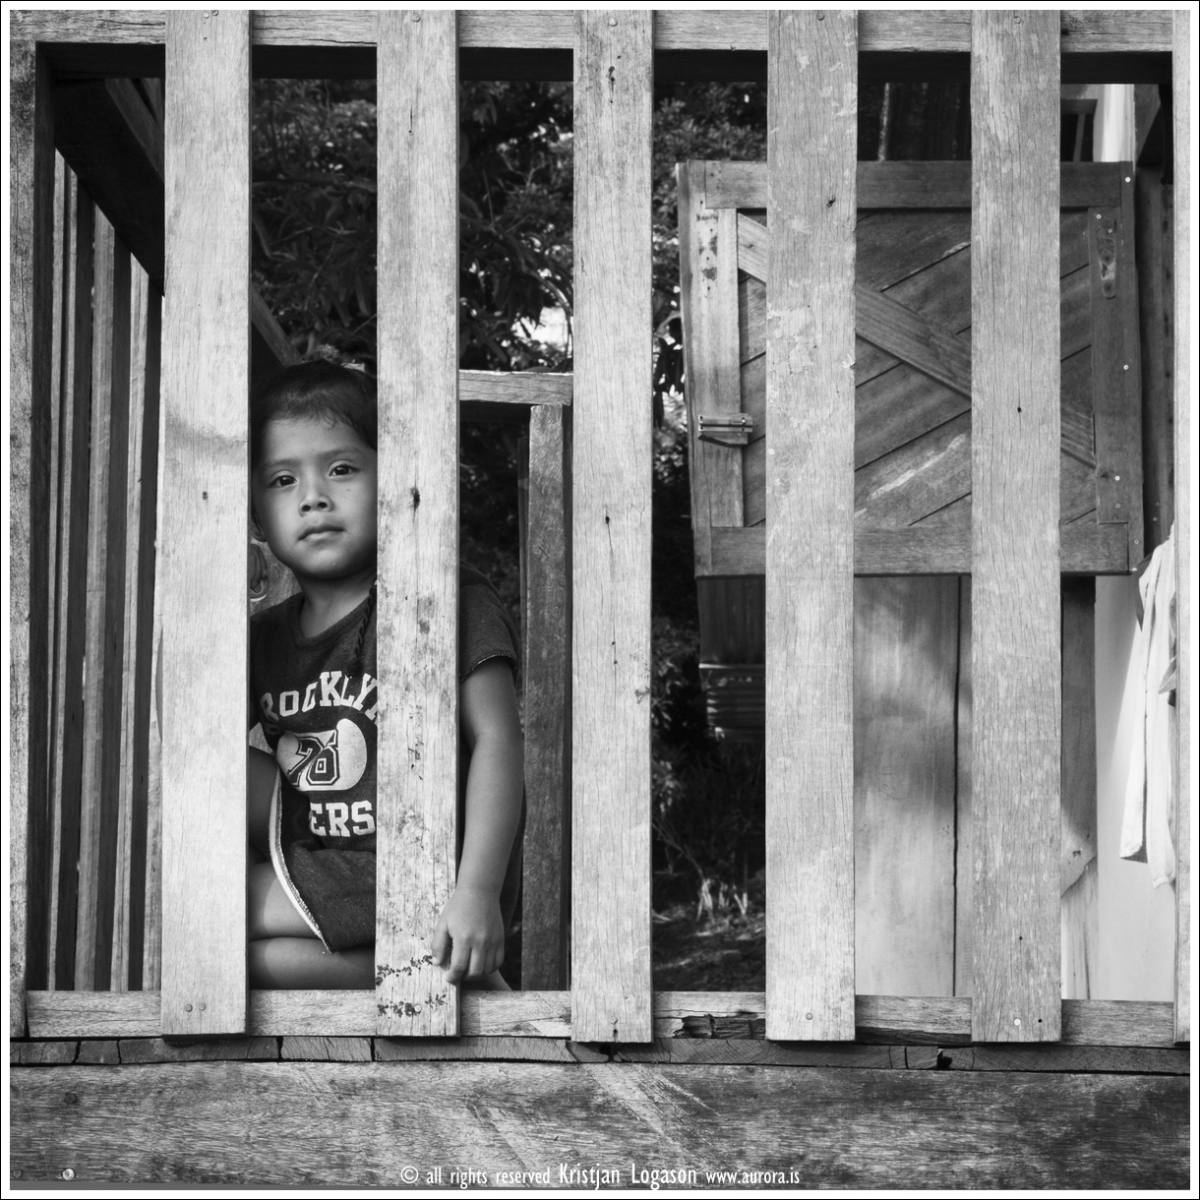 Young boy in Bocas del Toro looking through the front porch balcony handrail